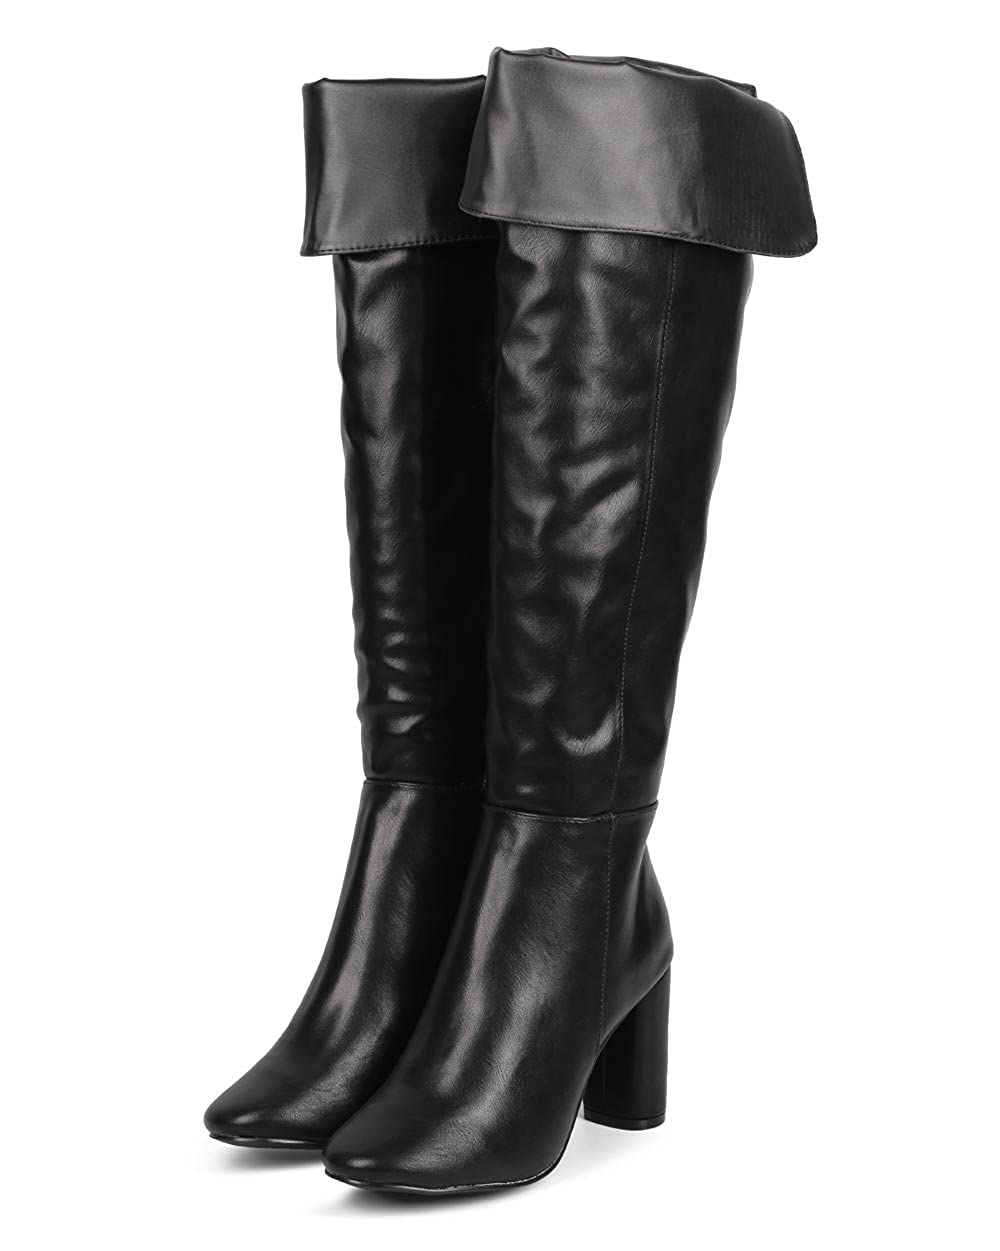 Women's Black Faux Leather Fold Over Knee-High Block Heel Tailored Boot - DeluxeAdultCostumes.com